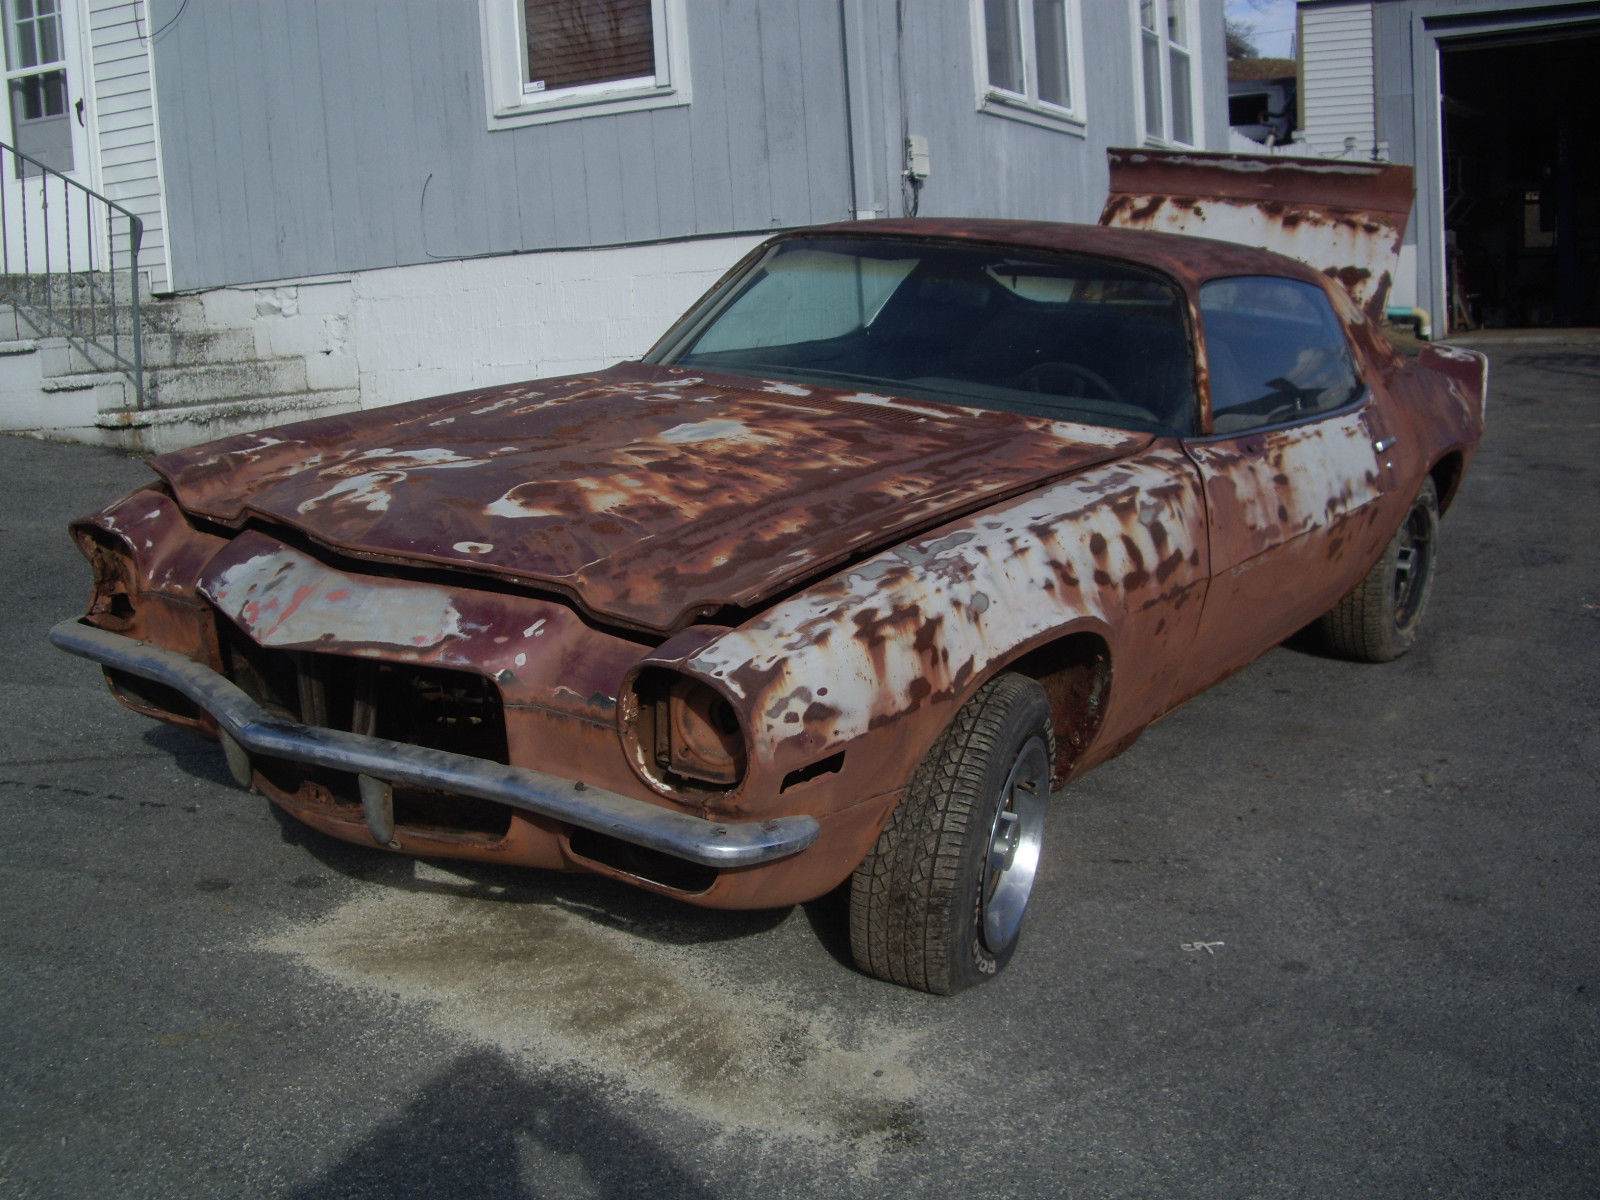 Camaro Type Lt Z Speed Numbers Matching Barn Find Project Car